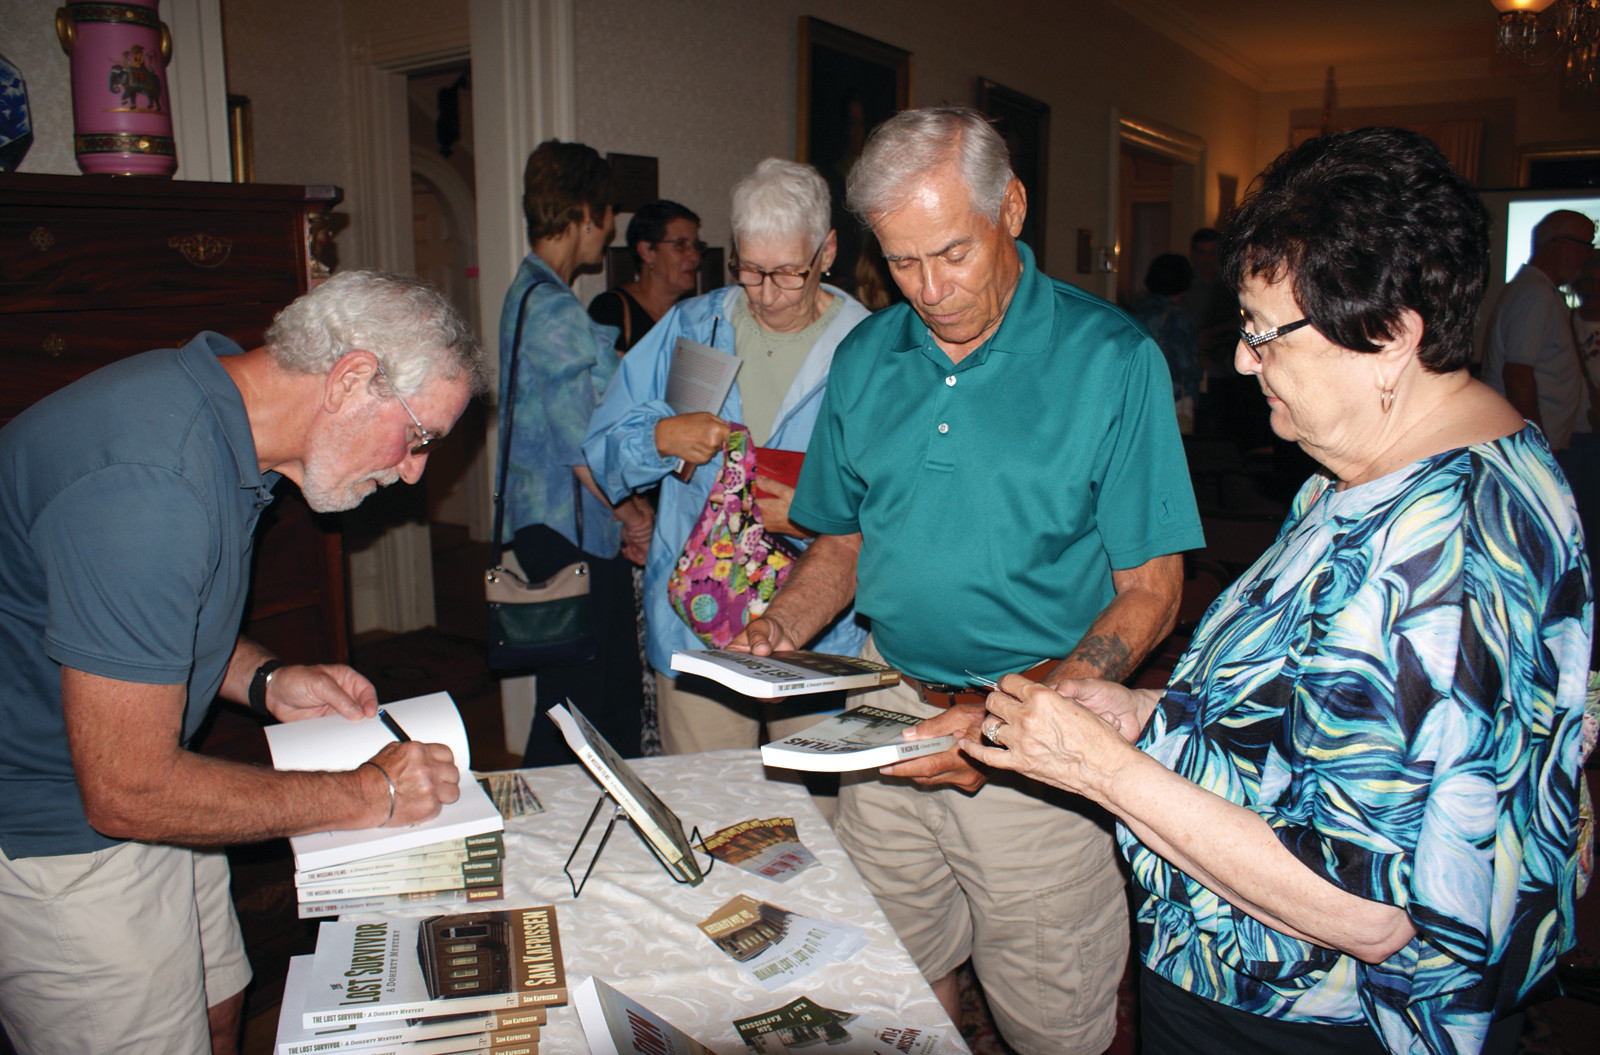 BOOK SIGNING: Pictured is author Sam Kafrissen signing books for Rudy and Marie Sanda.